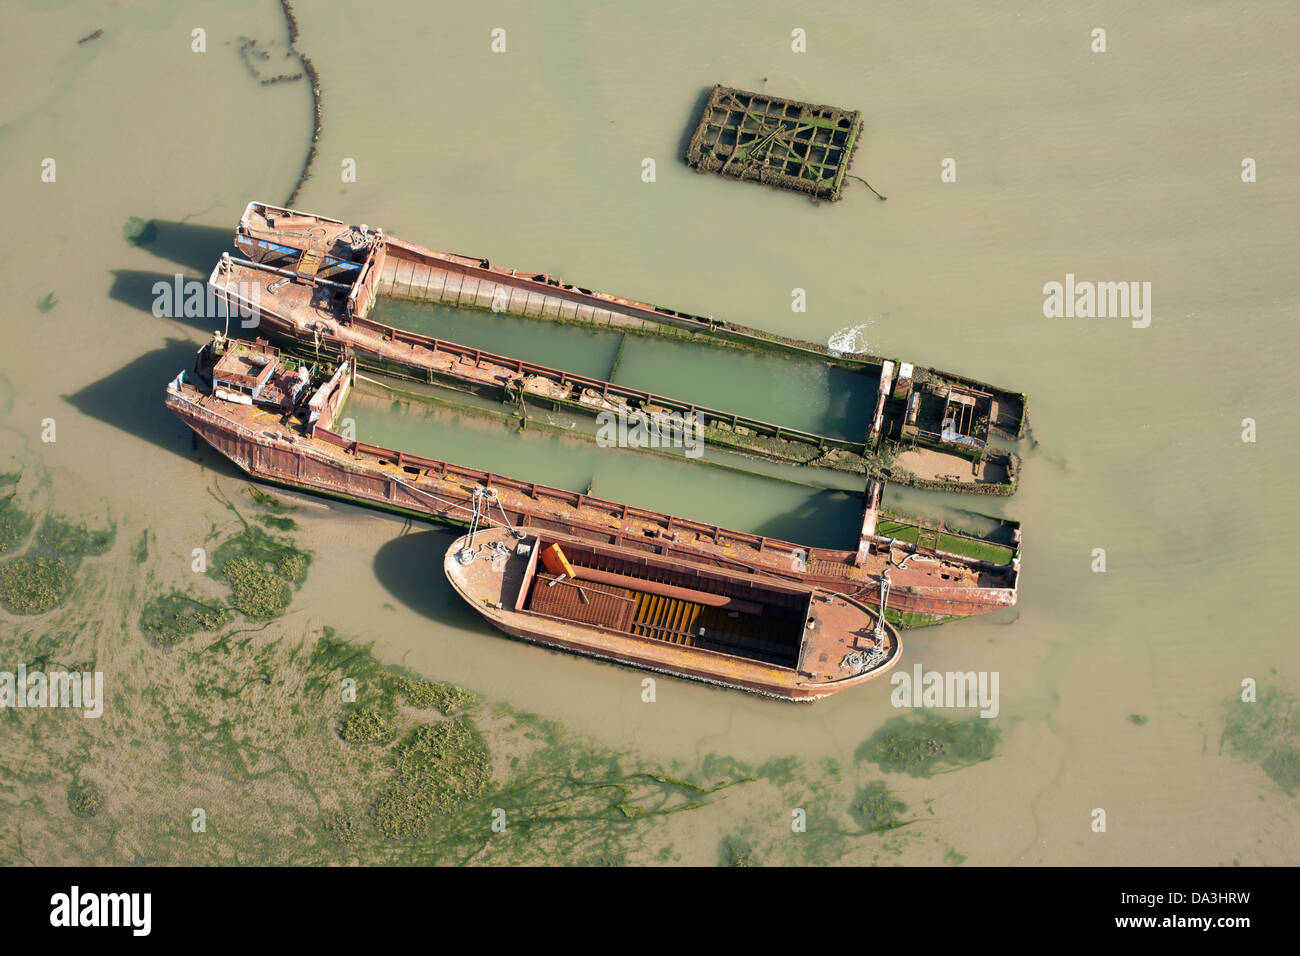 RUST IN PEACE (aerial view). Rusted boats on the Thames Estuary, Isle of Sheppey, Kent, England, Great Britain, Stock Photo